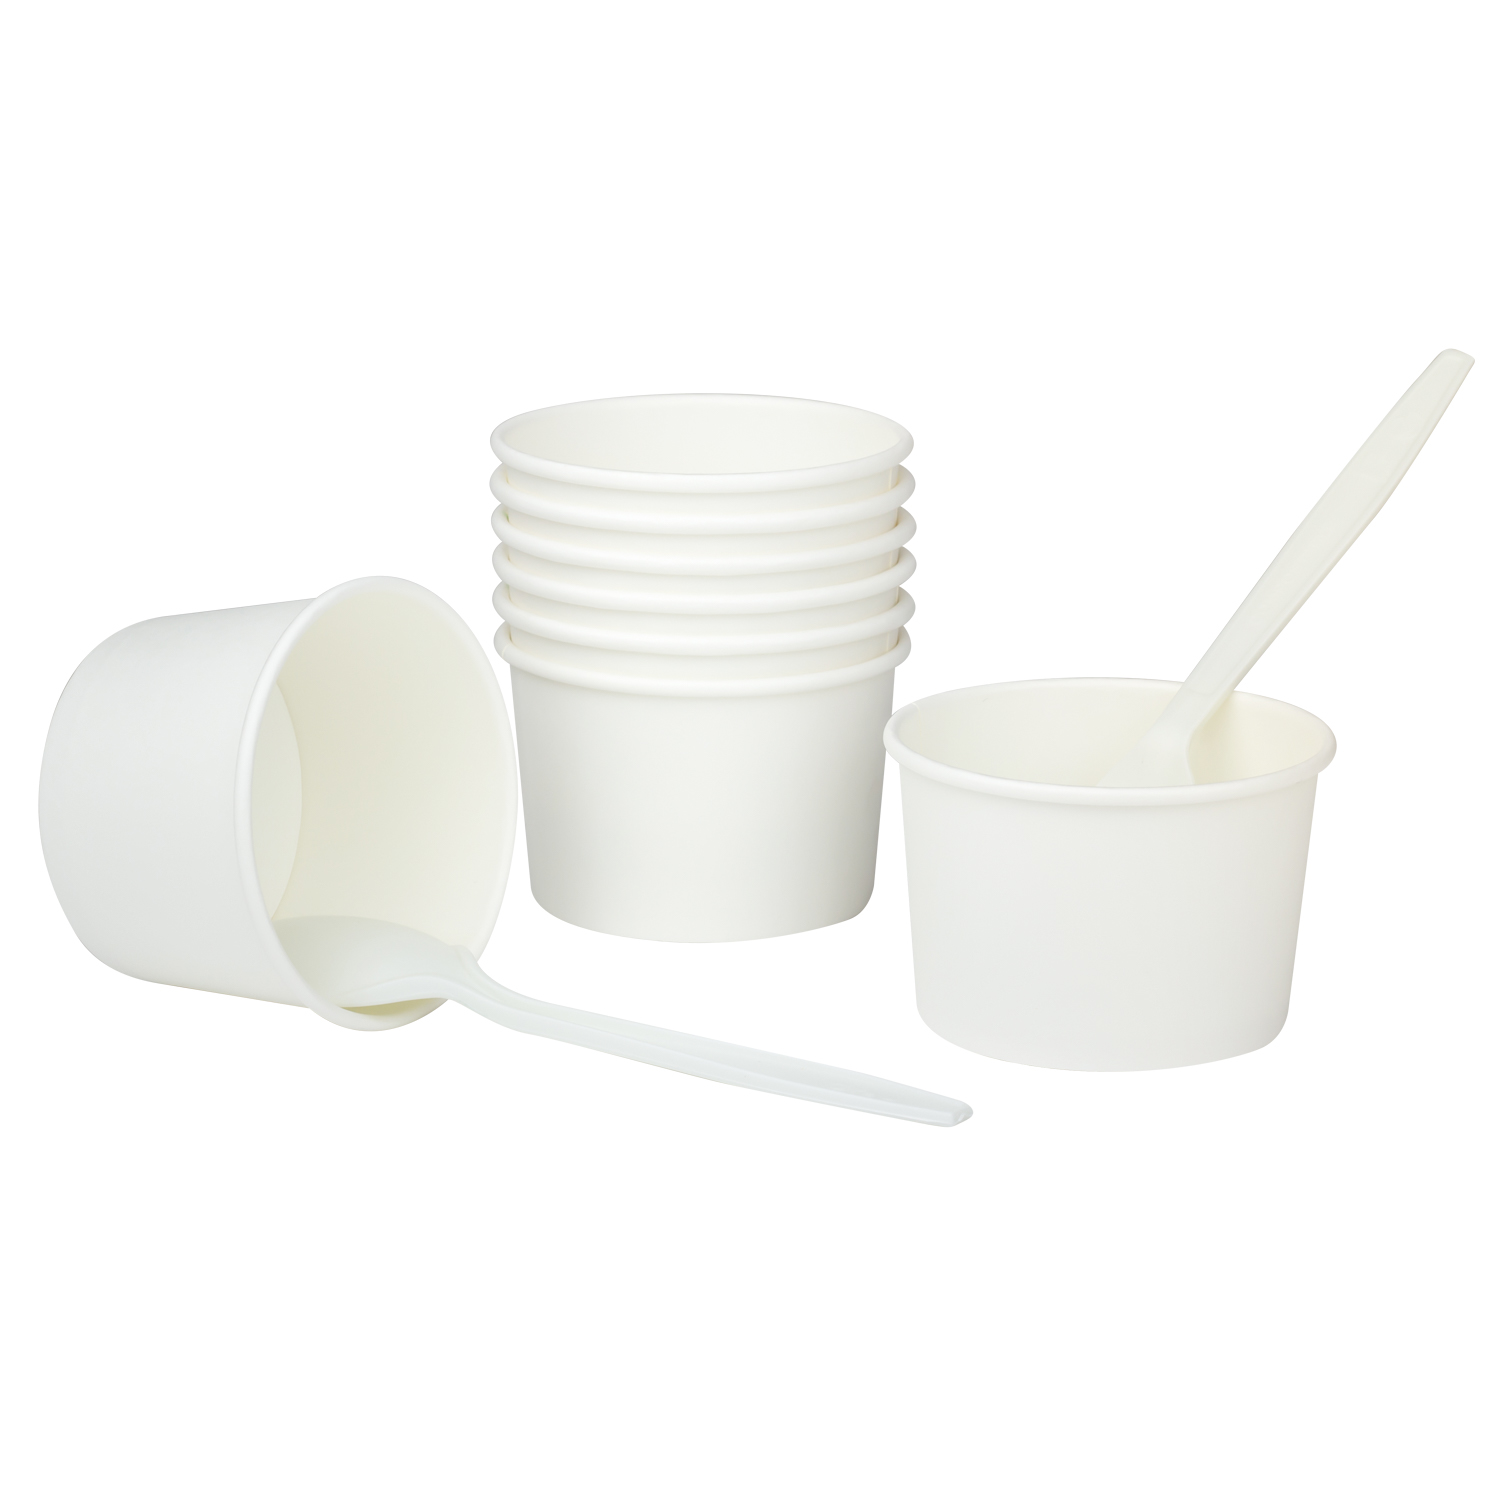 Karat Earth by Lollicup White Soup Containers